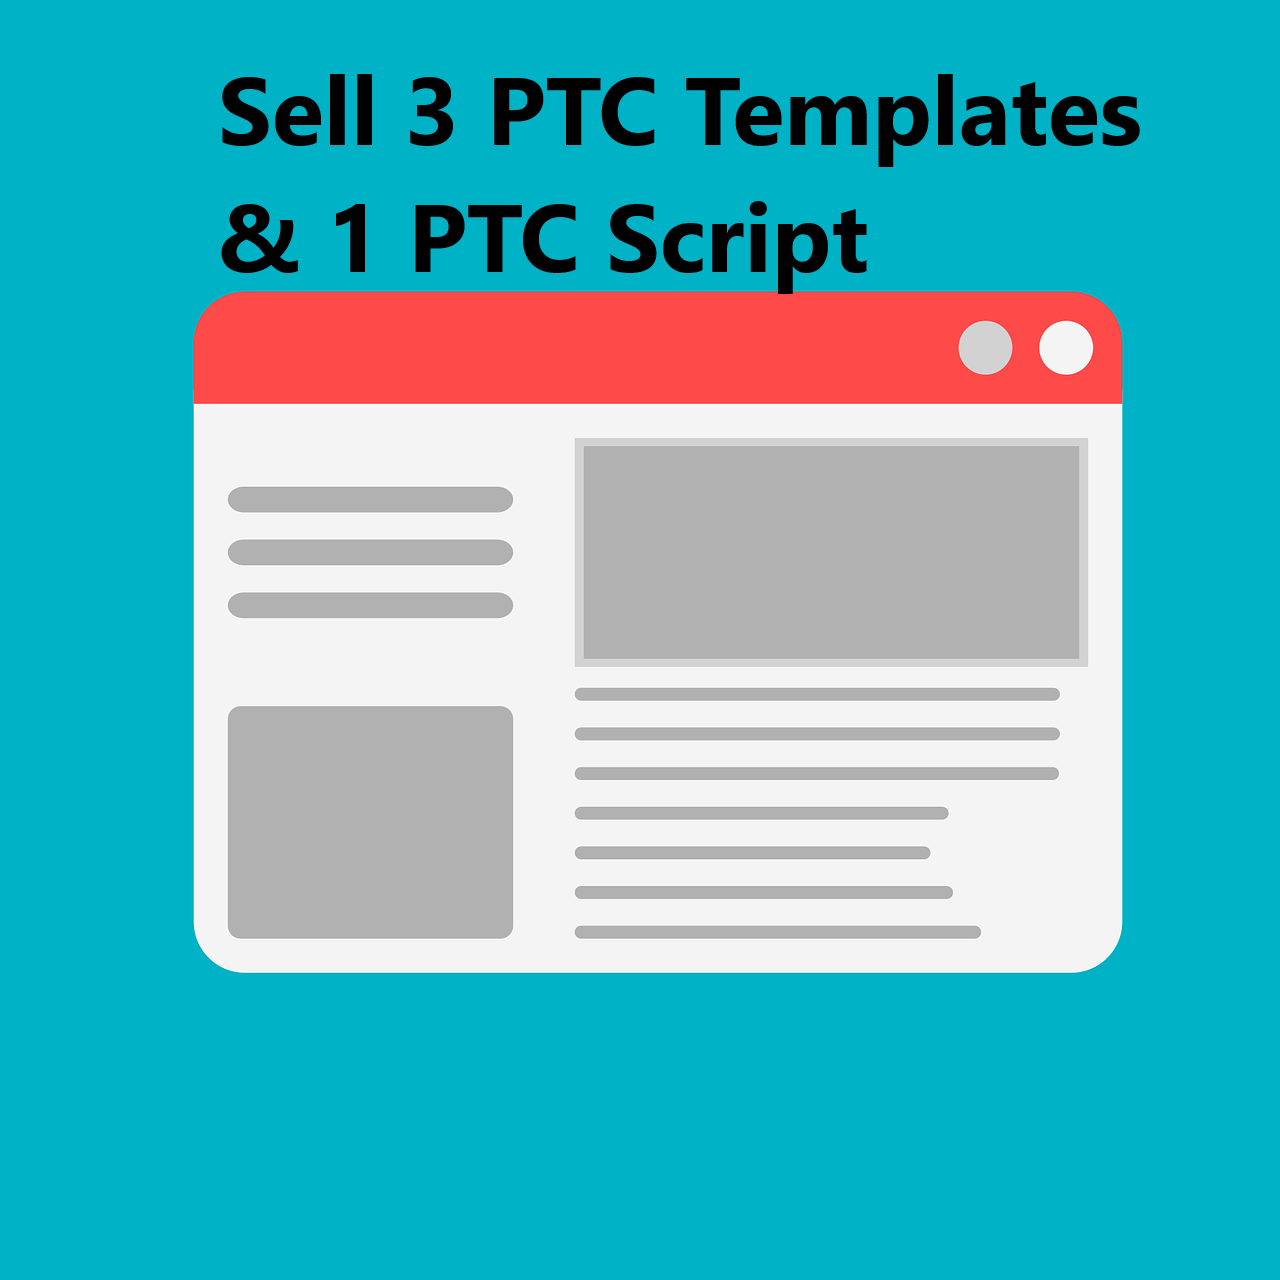 sell 3 ptc website templates and the script